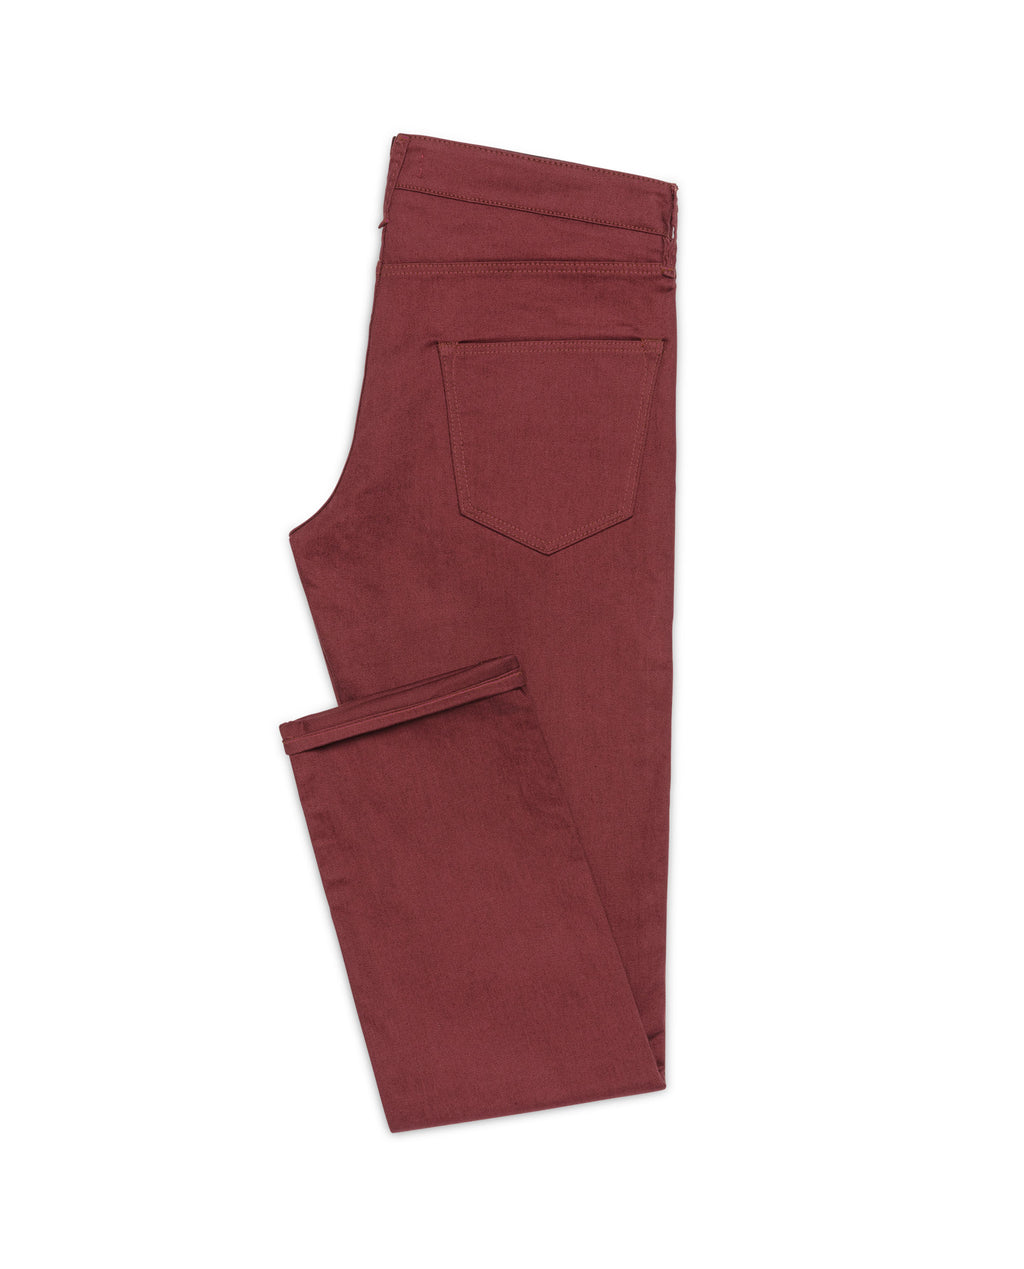 COL021 Wine Red 5 pocket, Made In Italy. Medlemspris 1.000,-